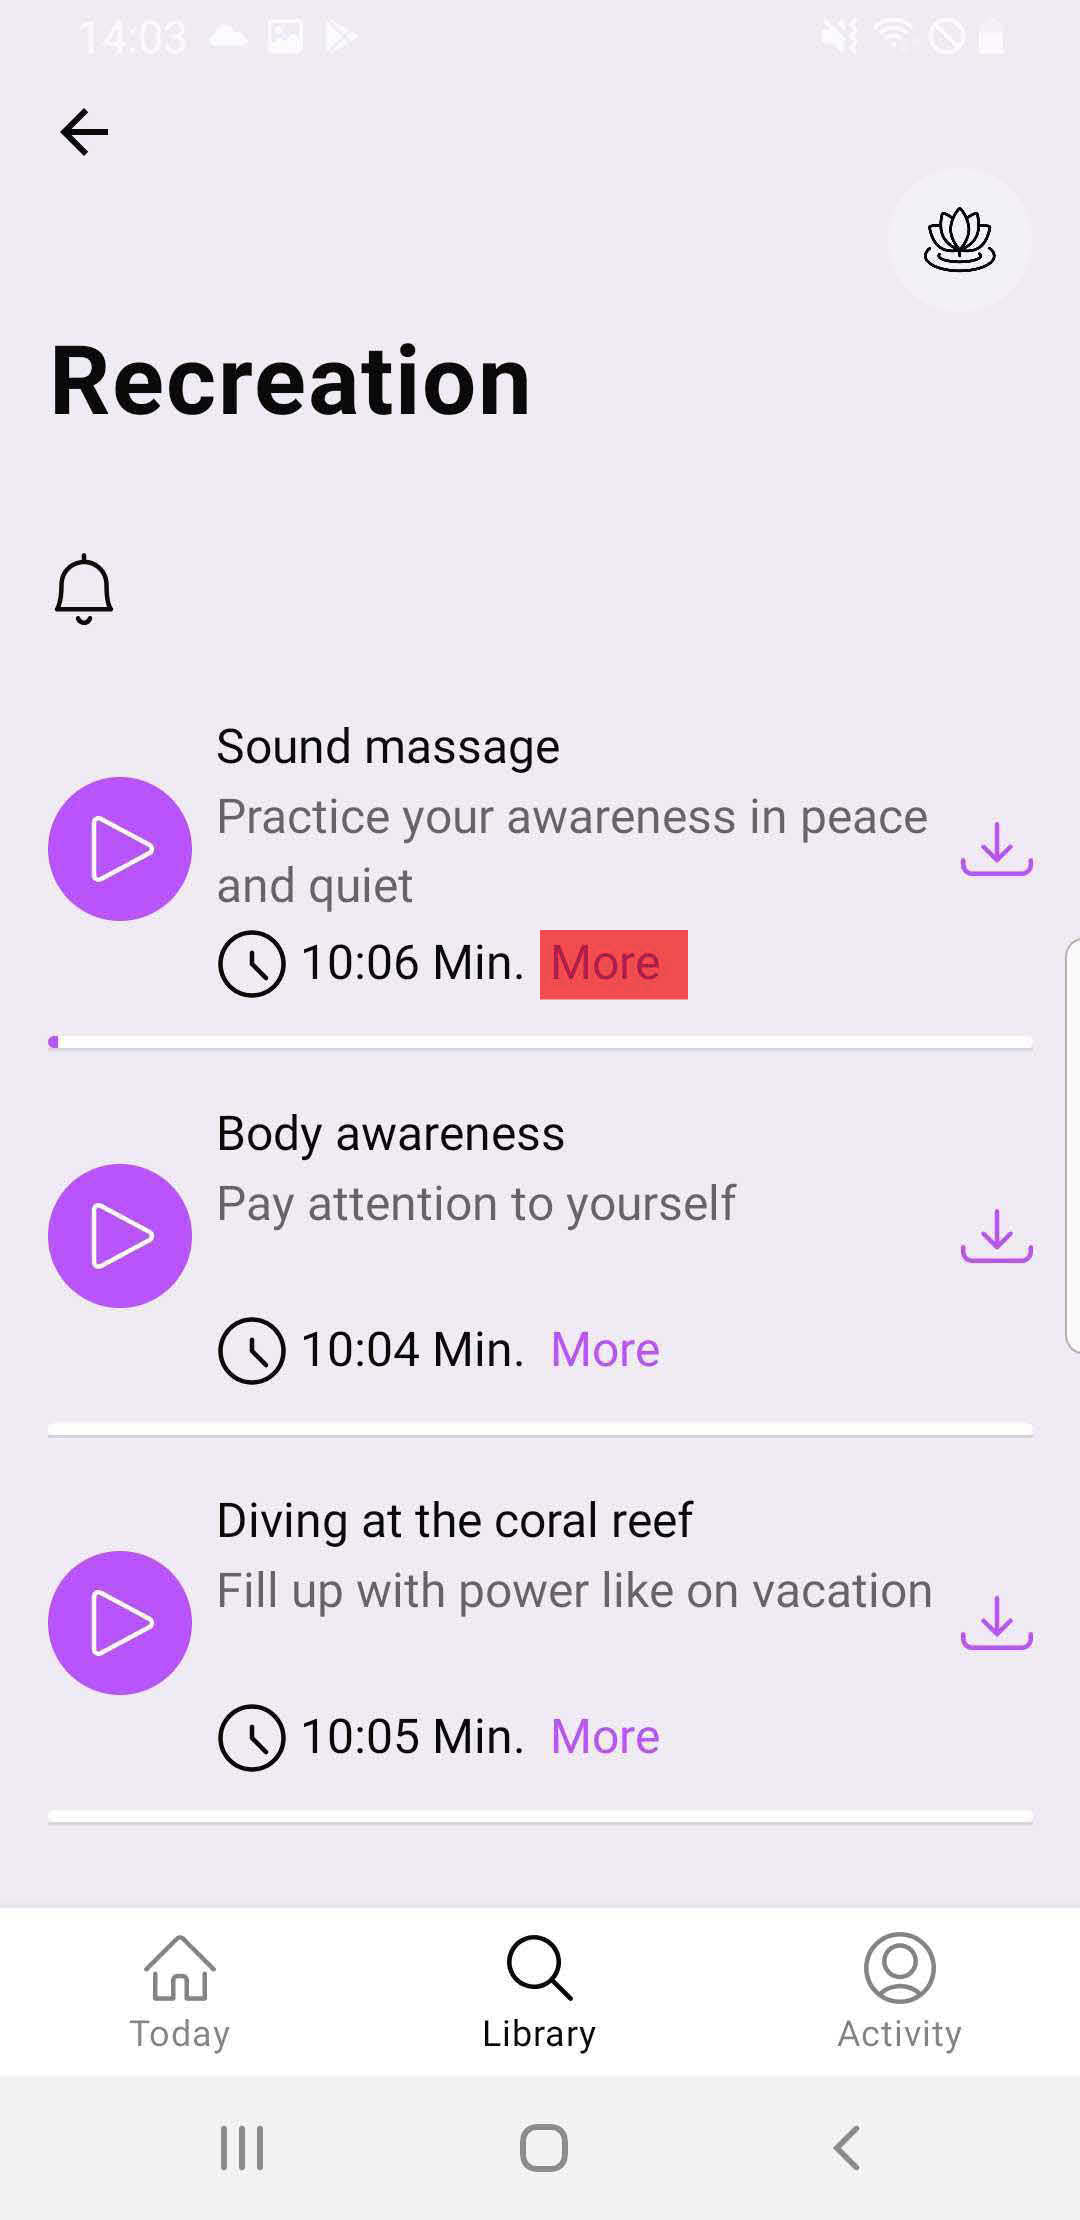 Show more informations about a meditation